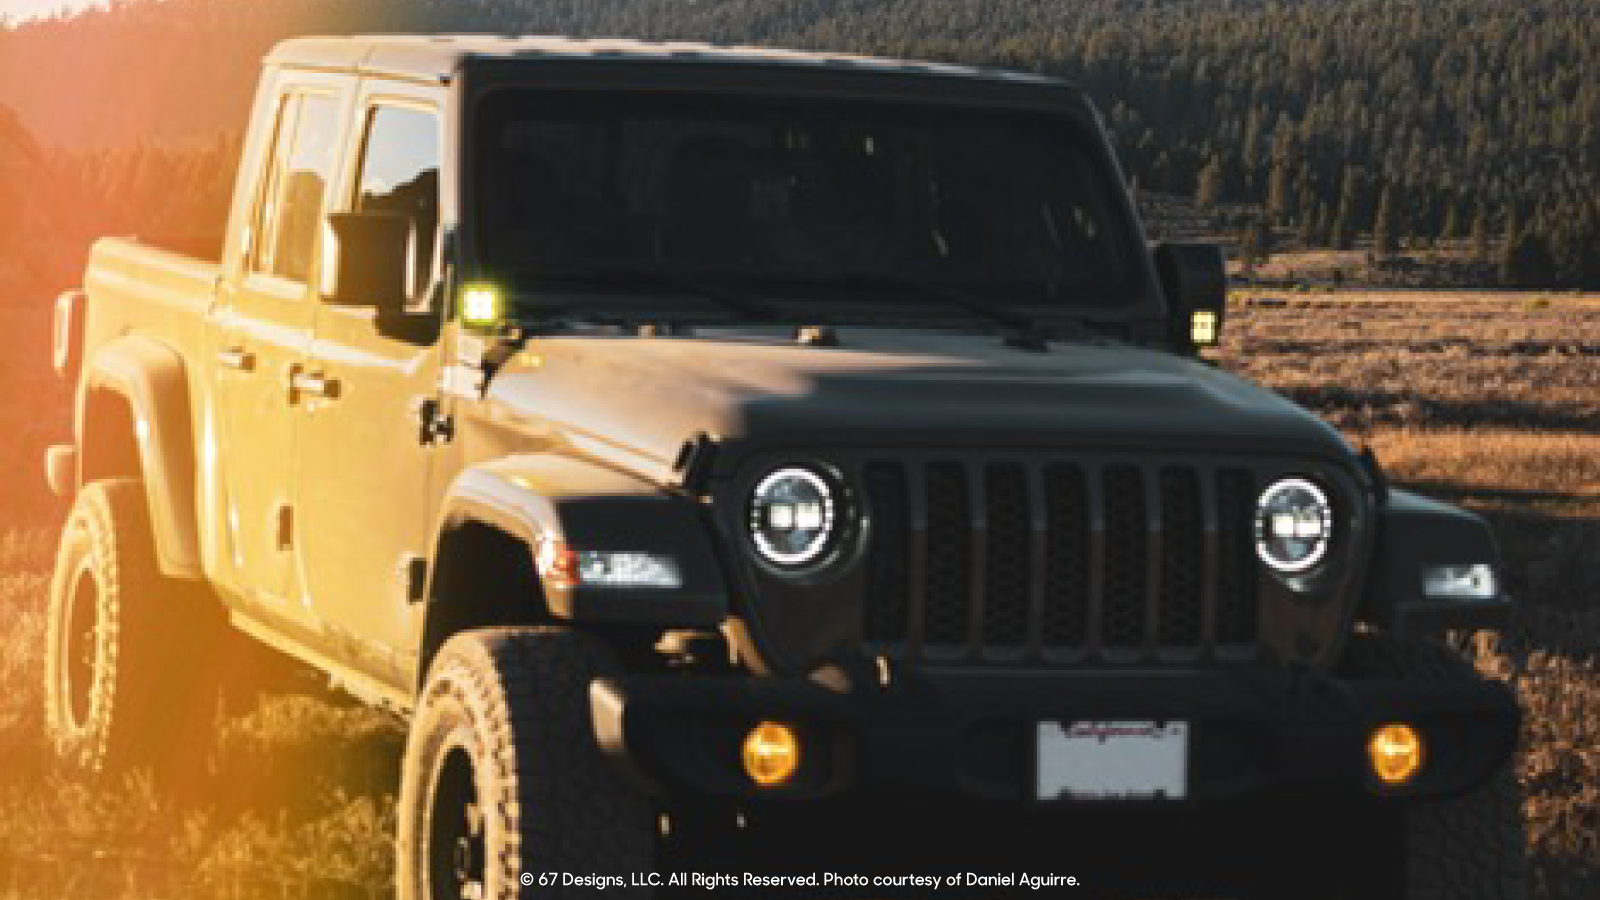 Jeep Gladiator in sunset